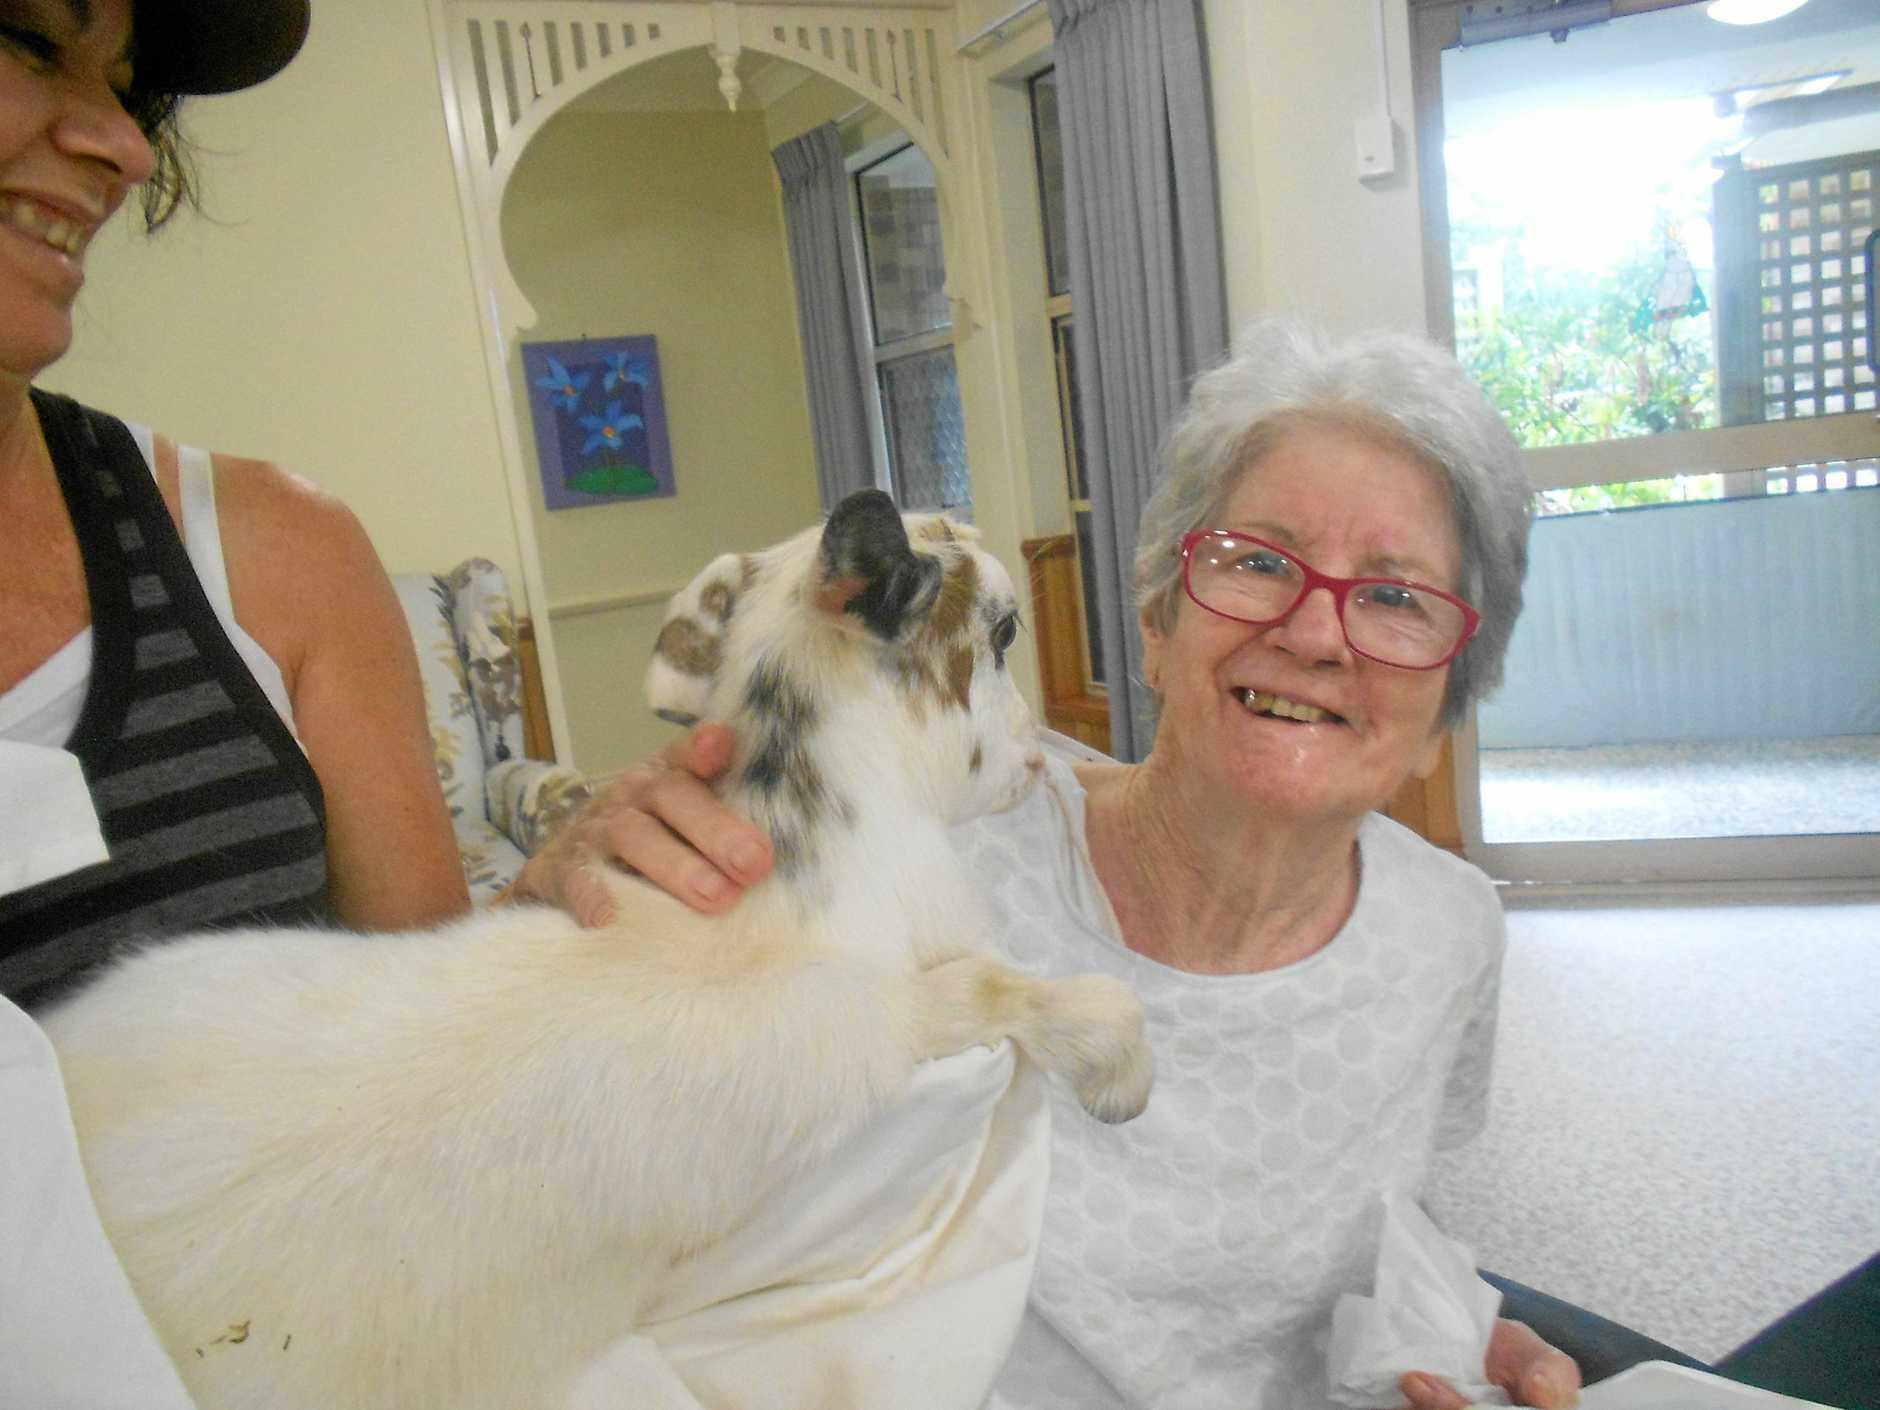 TriCare Kawana Waters resident Clare Evans taking part in the pet therapy program.